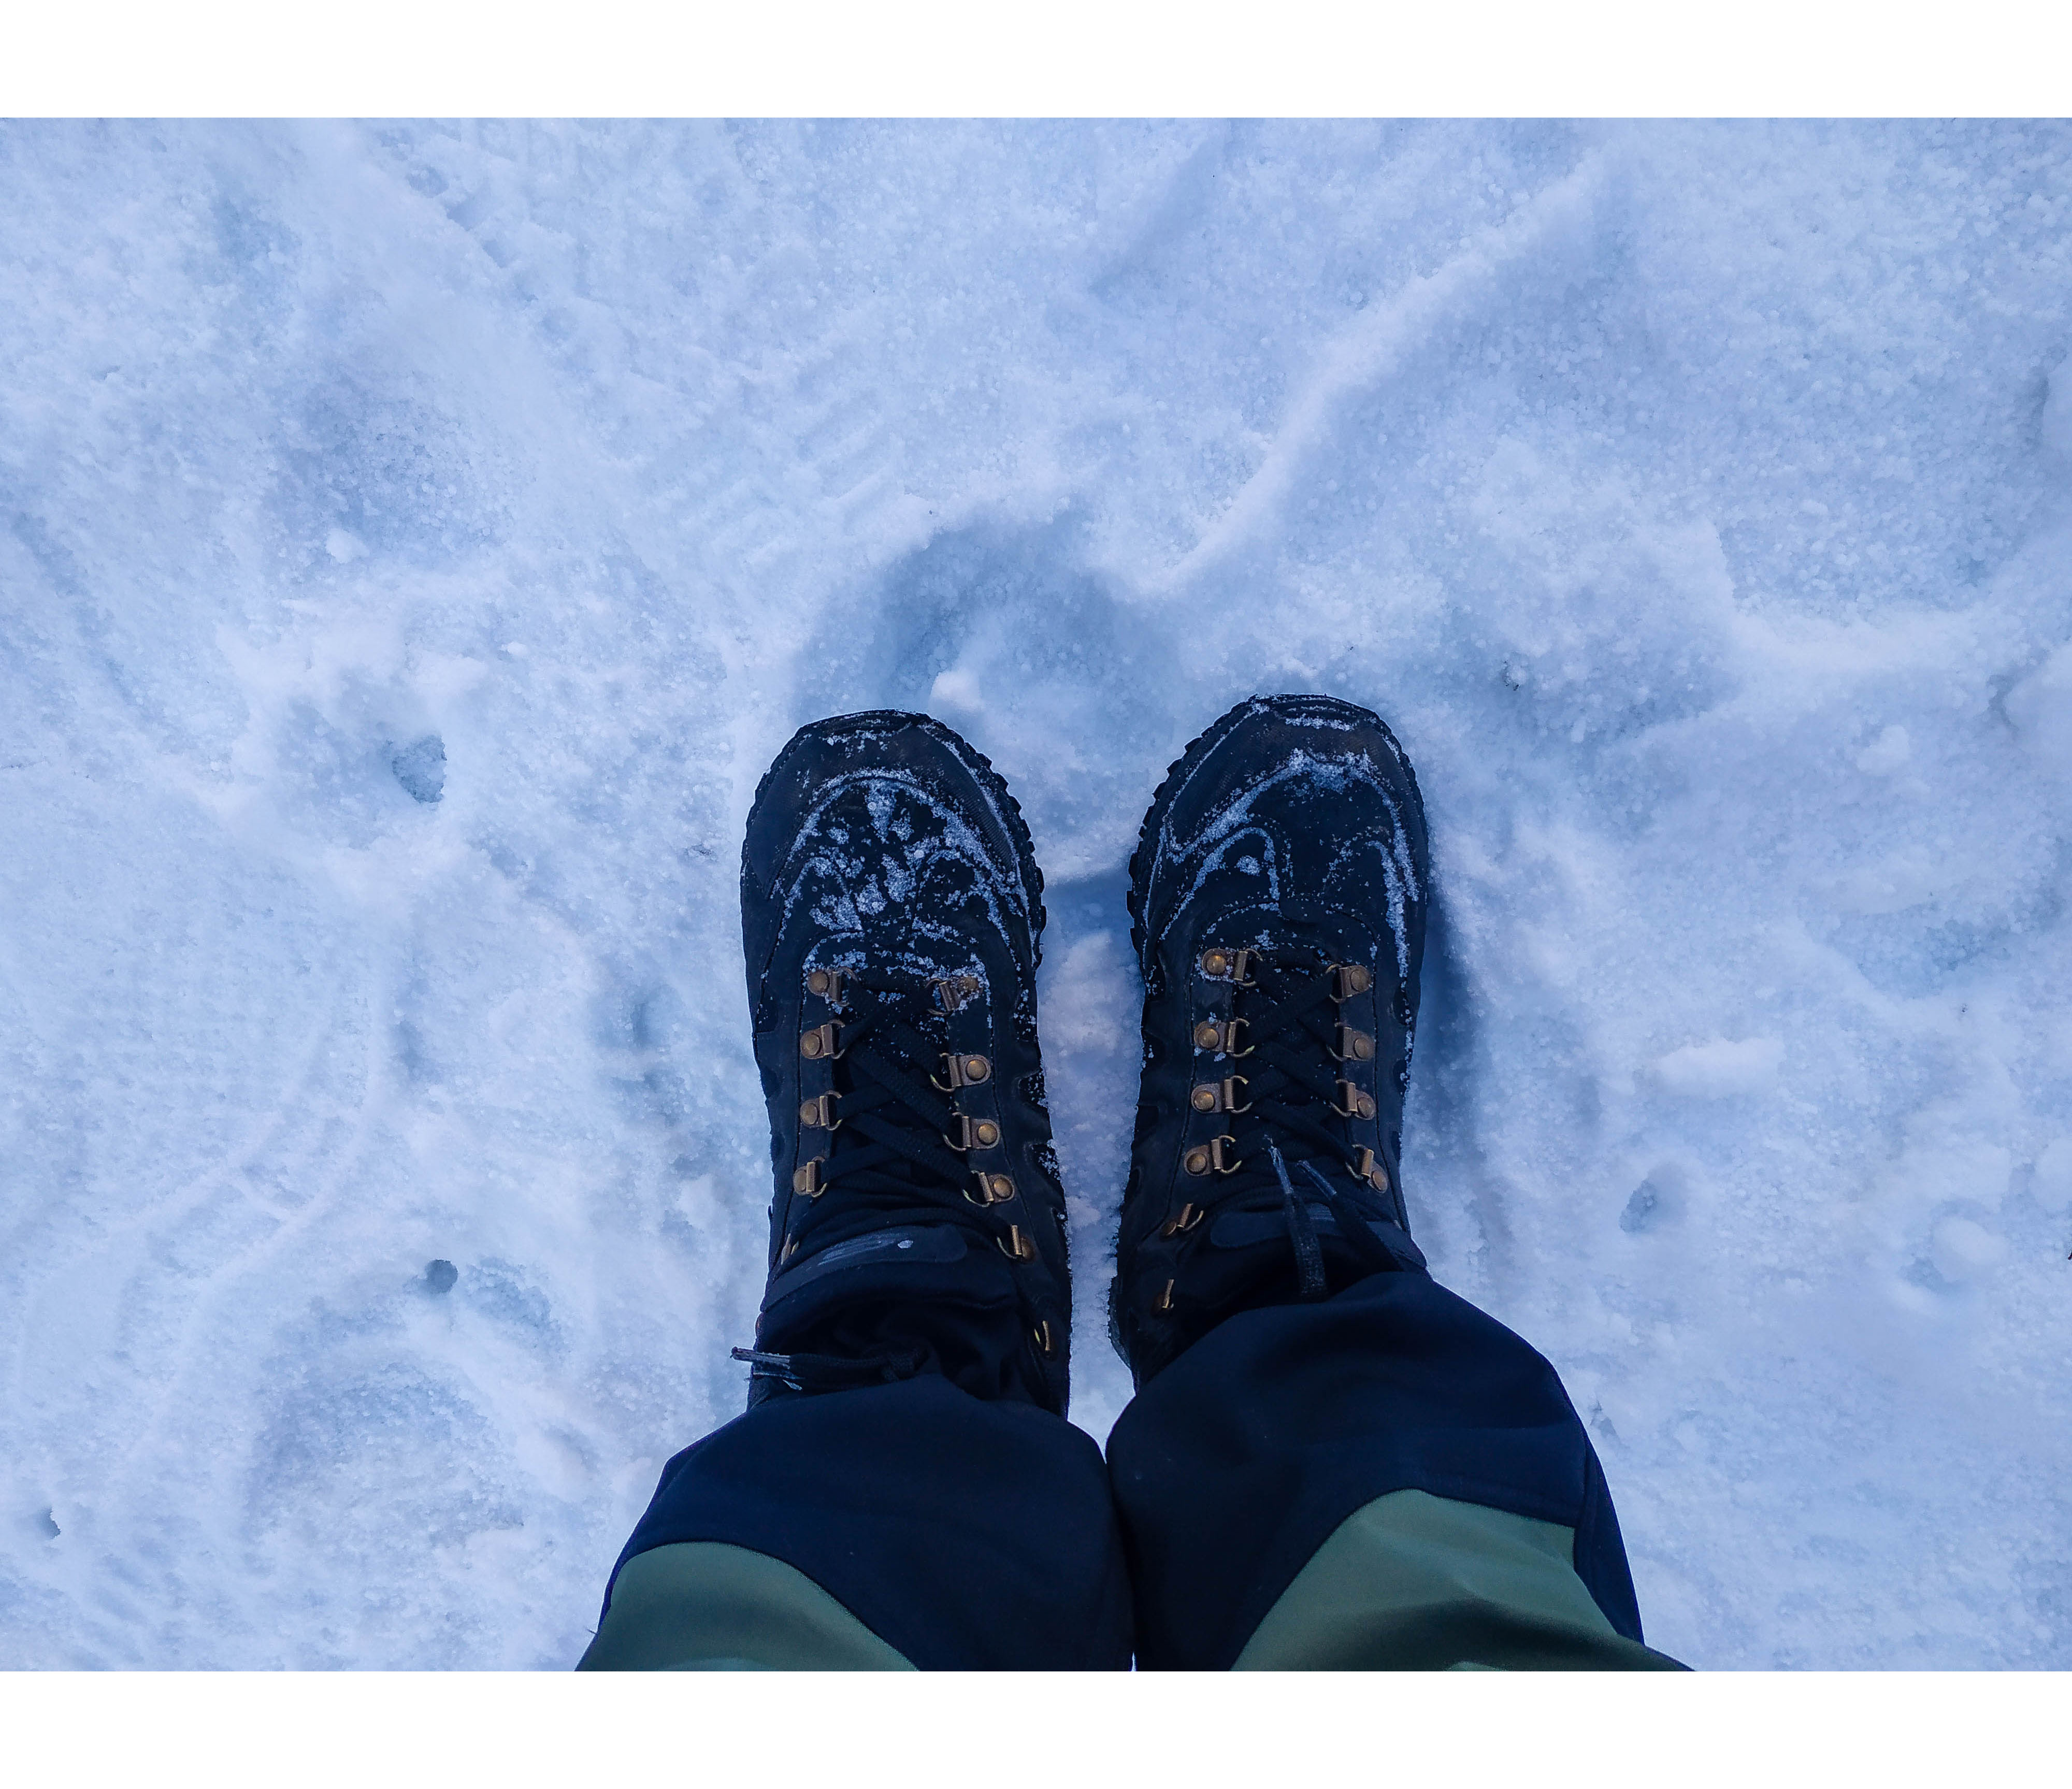 5 Common Problems Encountered While Trekking